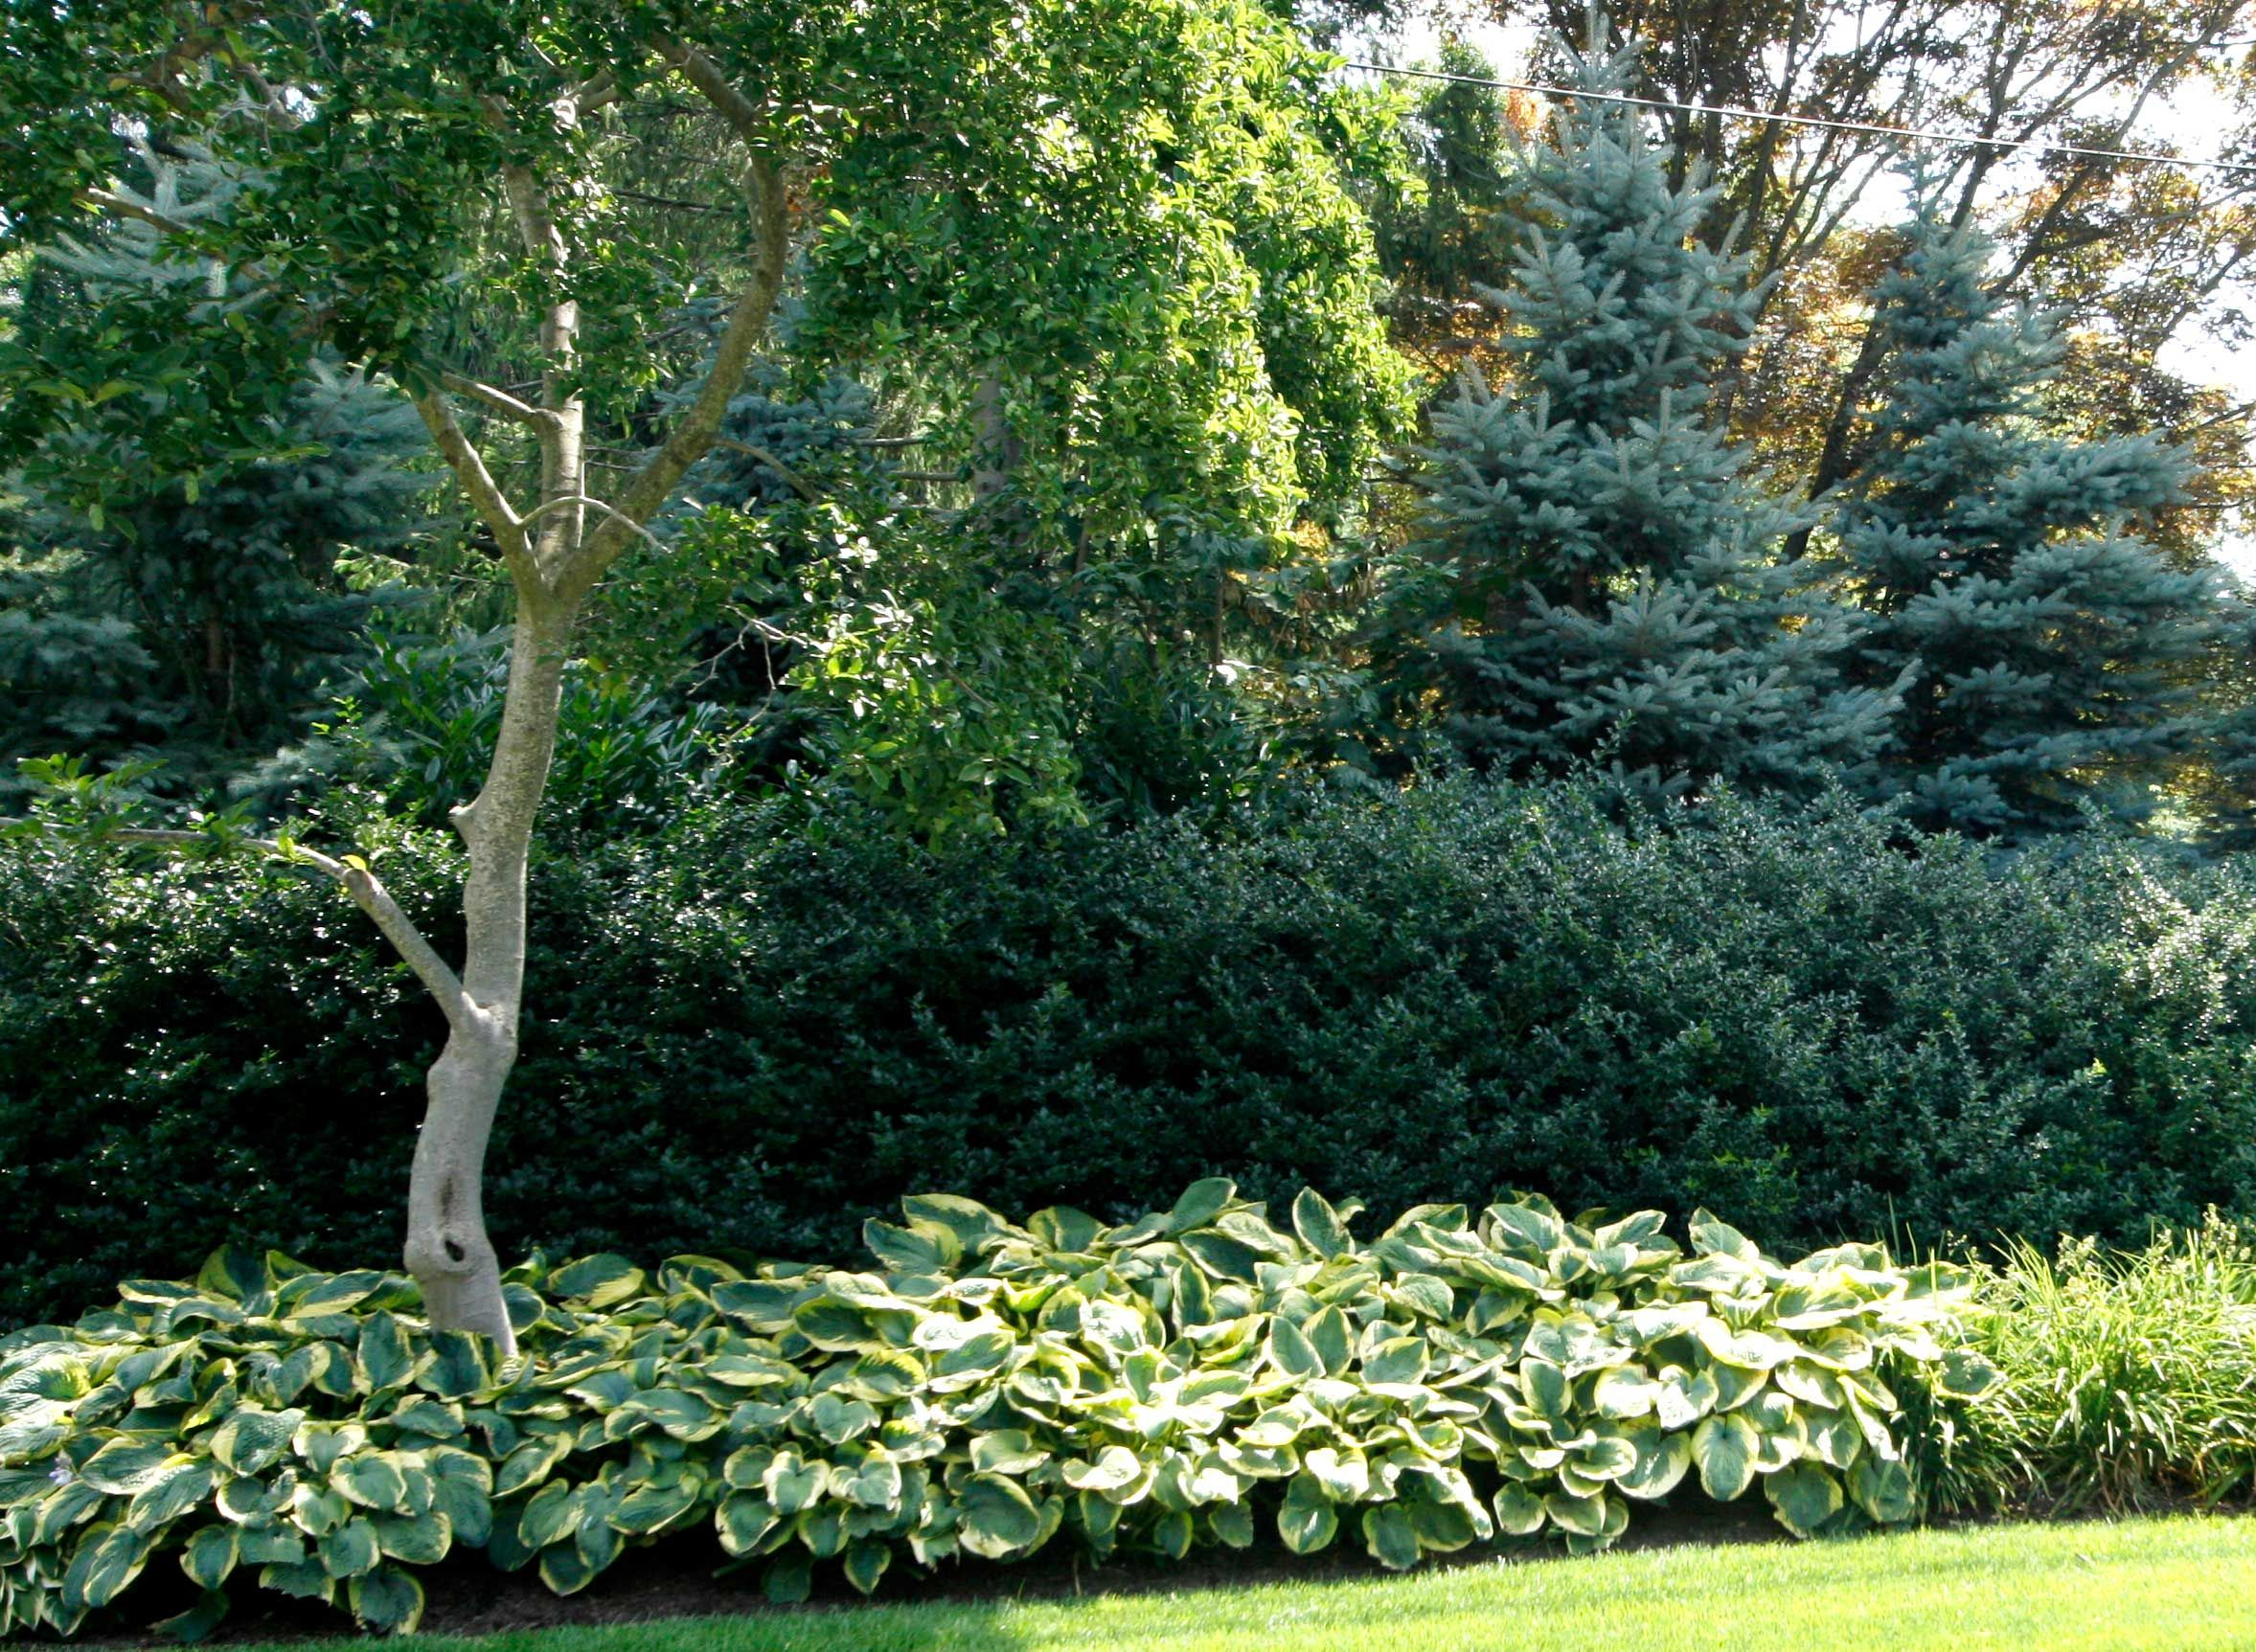 Landscaping Evergreen Trees For Privacy : Green giant arborvitae with a mix of annabelle hydrangea